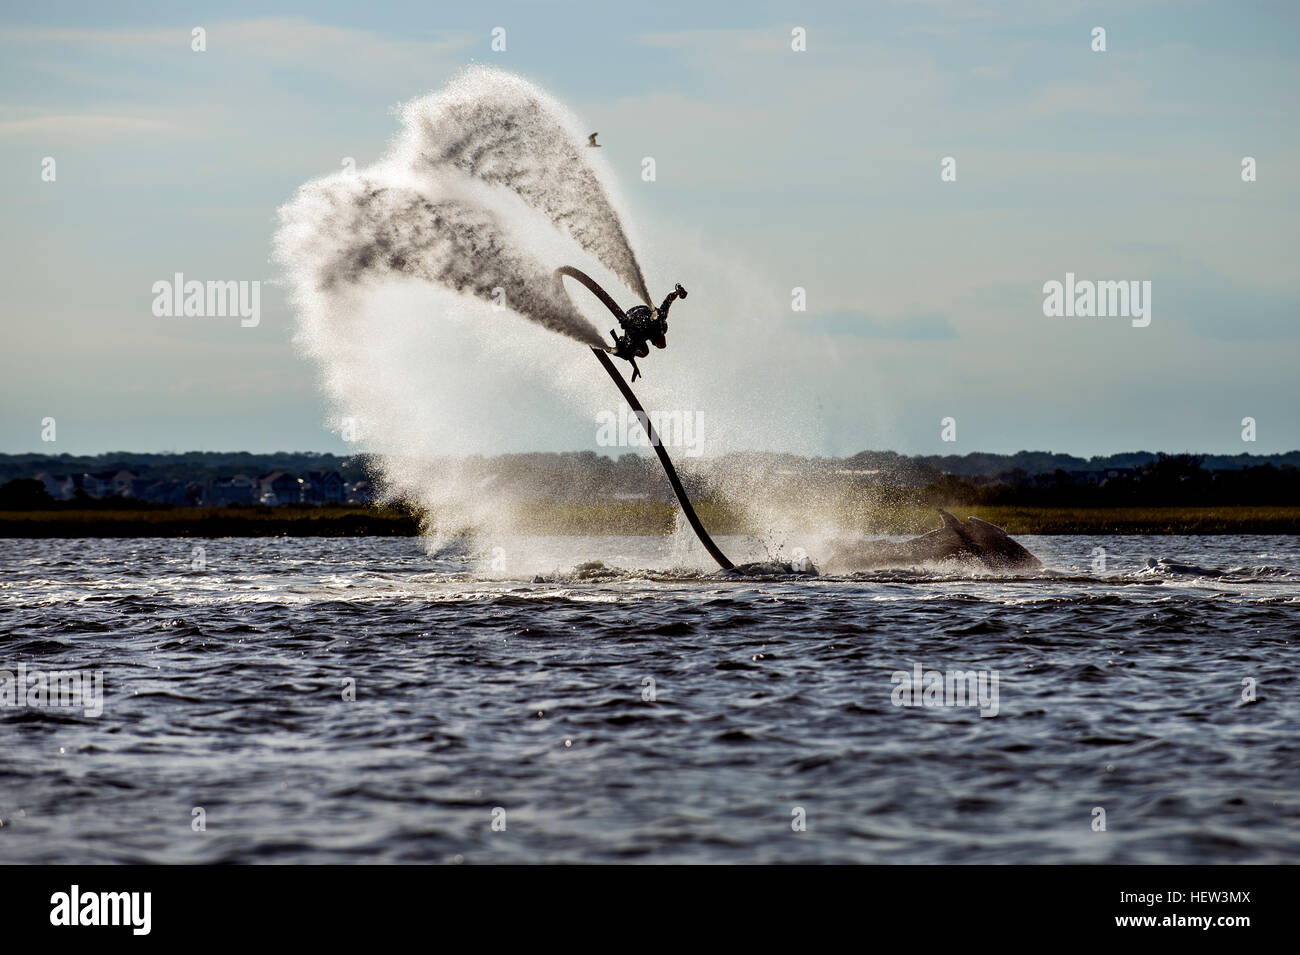 Person flyboarding in ocean, Seaside Heights, New Jersey, USA Stock Photo